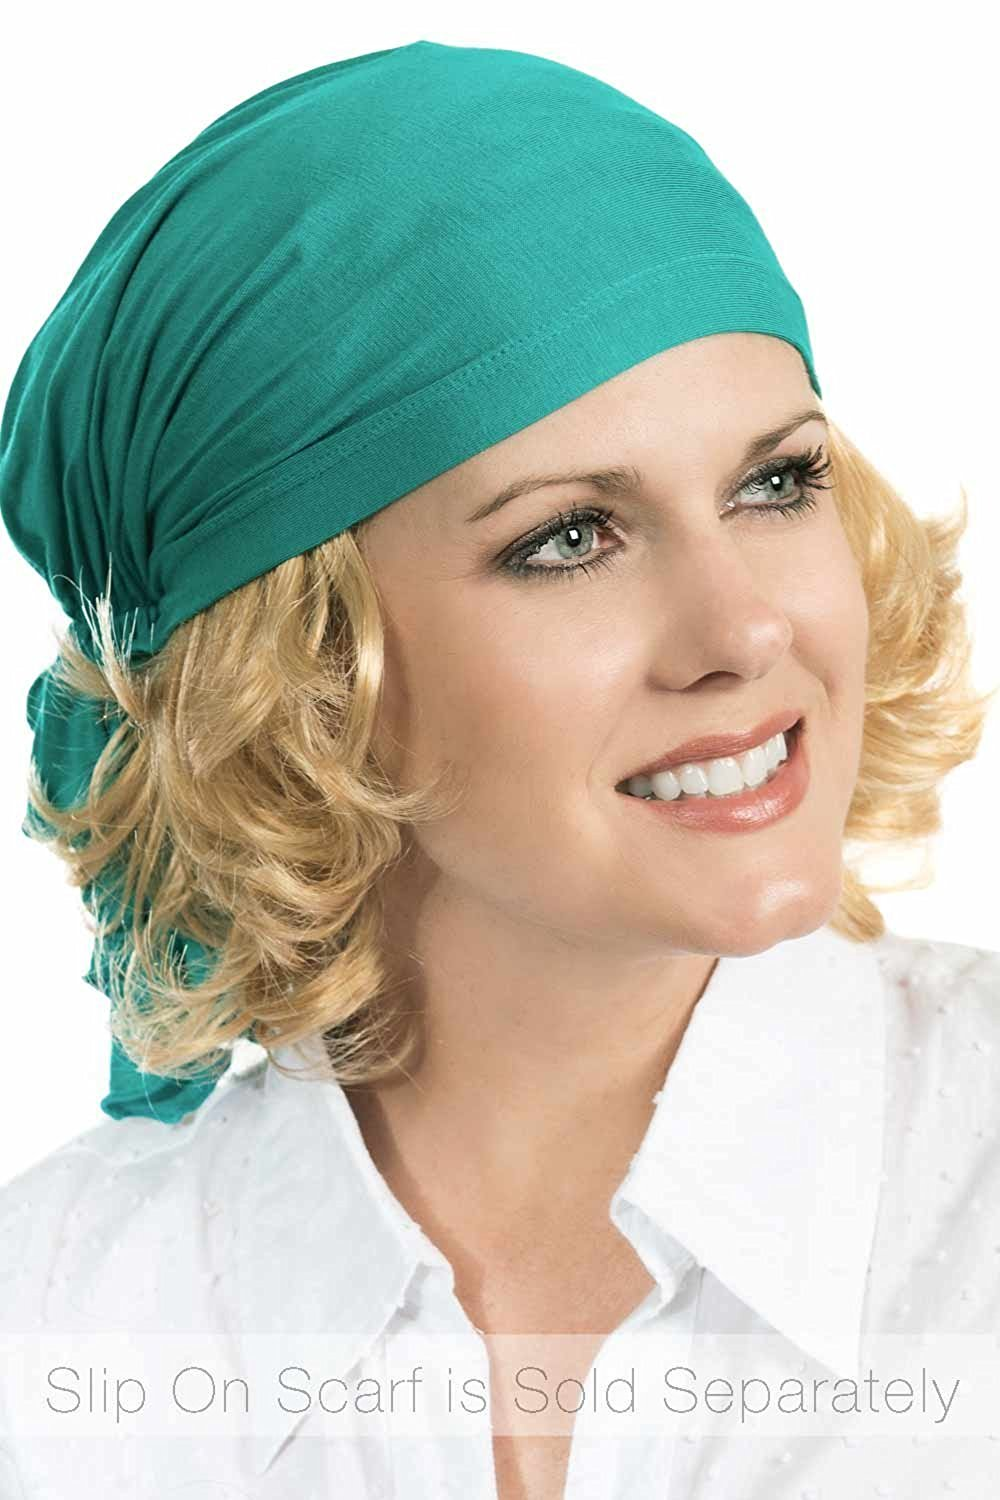 292996a19f2aa Get Quotations · Cardani Curly Hair Halo - Hairpiece for Hats I Hats with  Hair I Cancer Patients